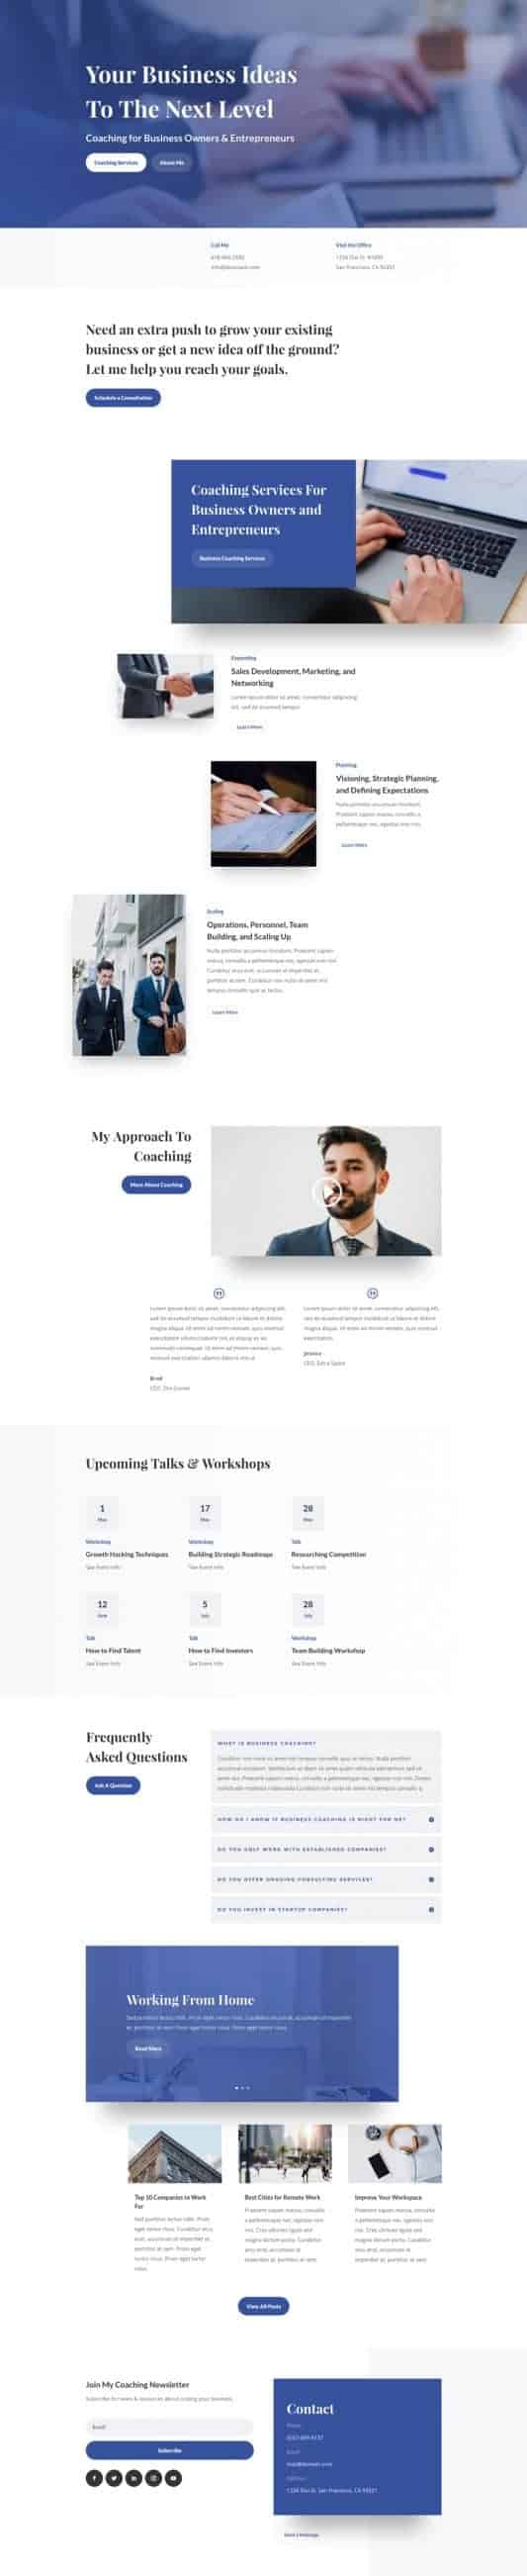 The Business Coach Page Style: Homepage Design 1